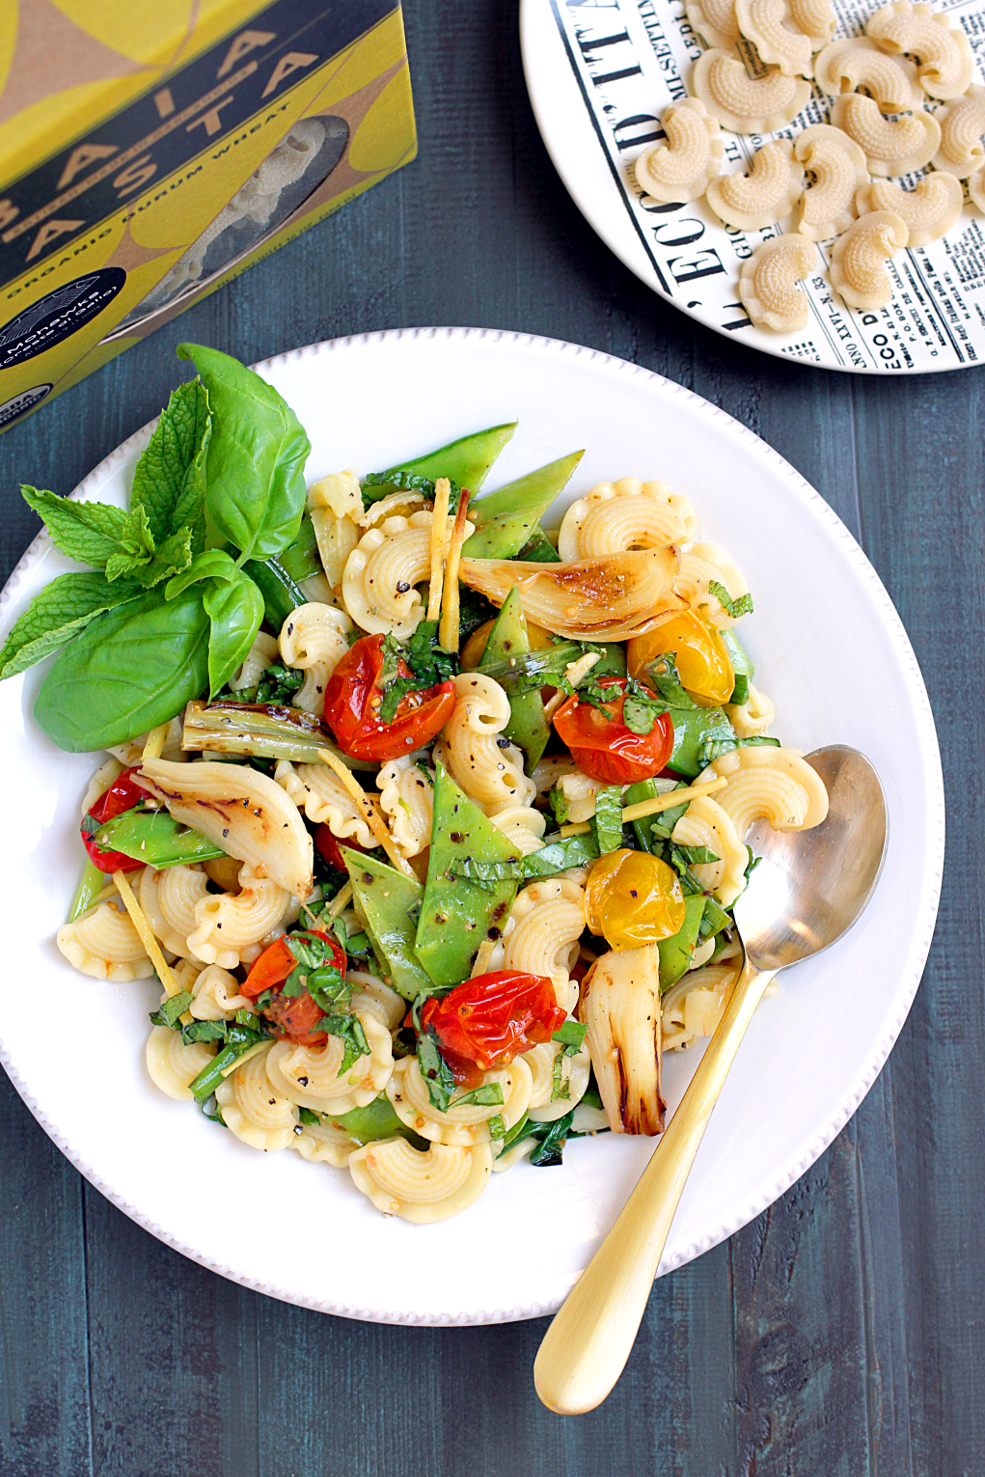 Image of pasta salad with roasted tomatoes, snow peas and spring onions.